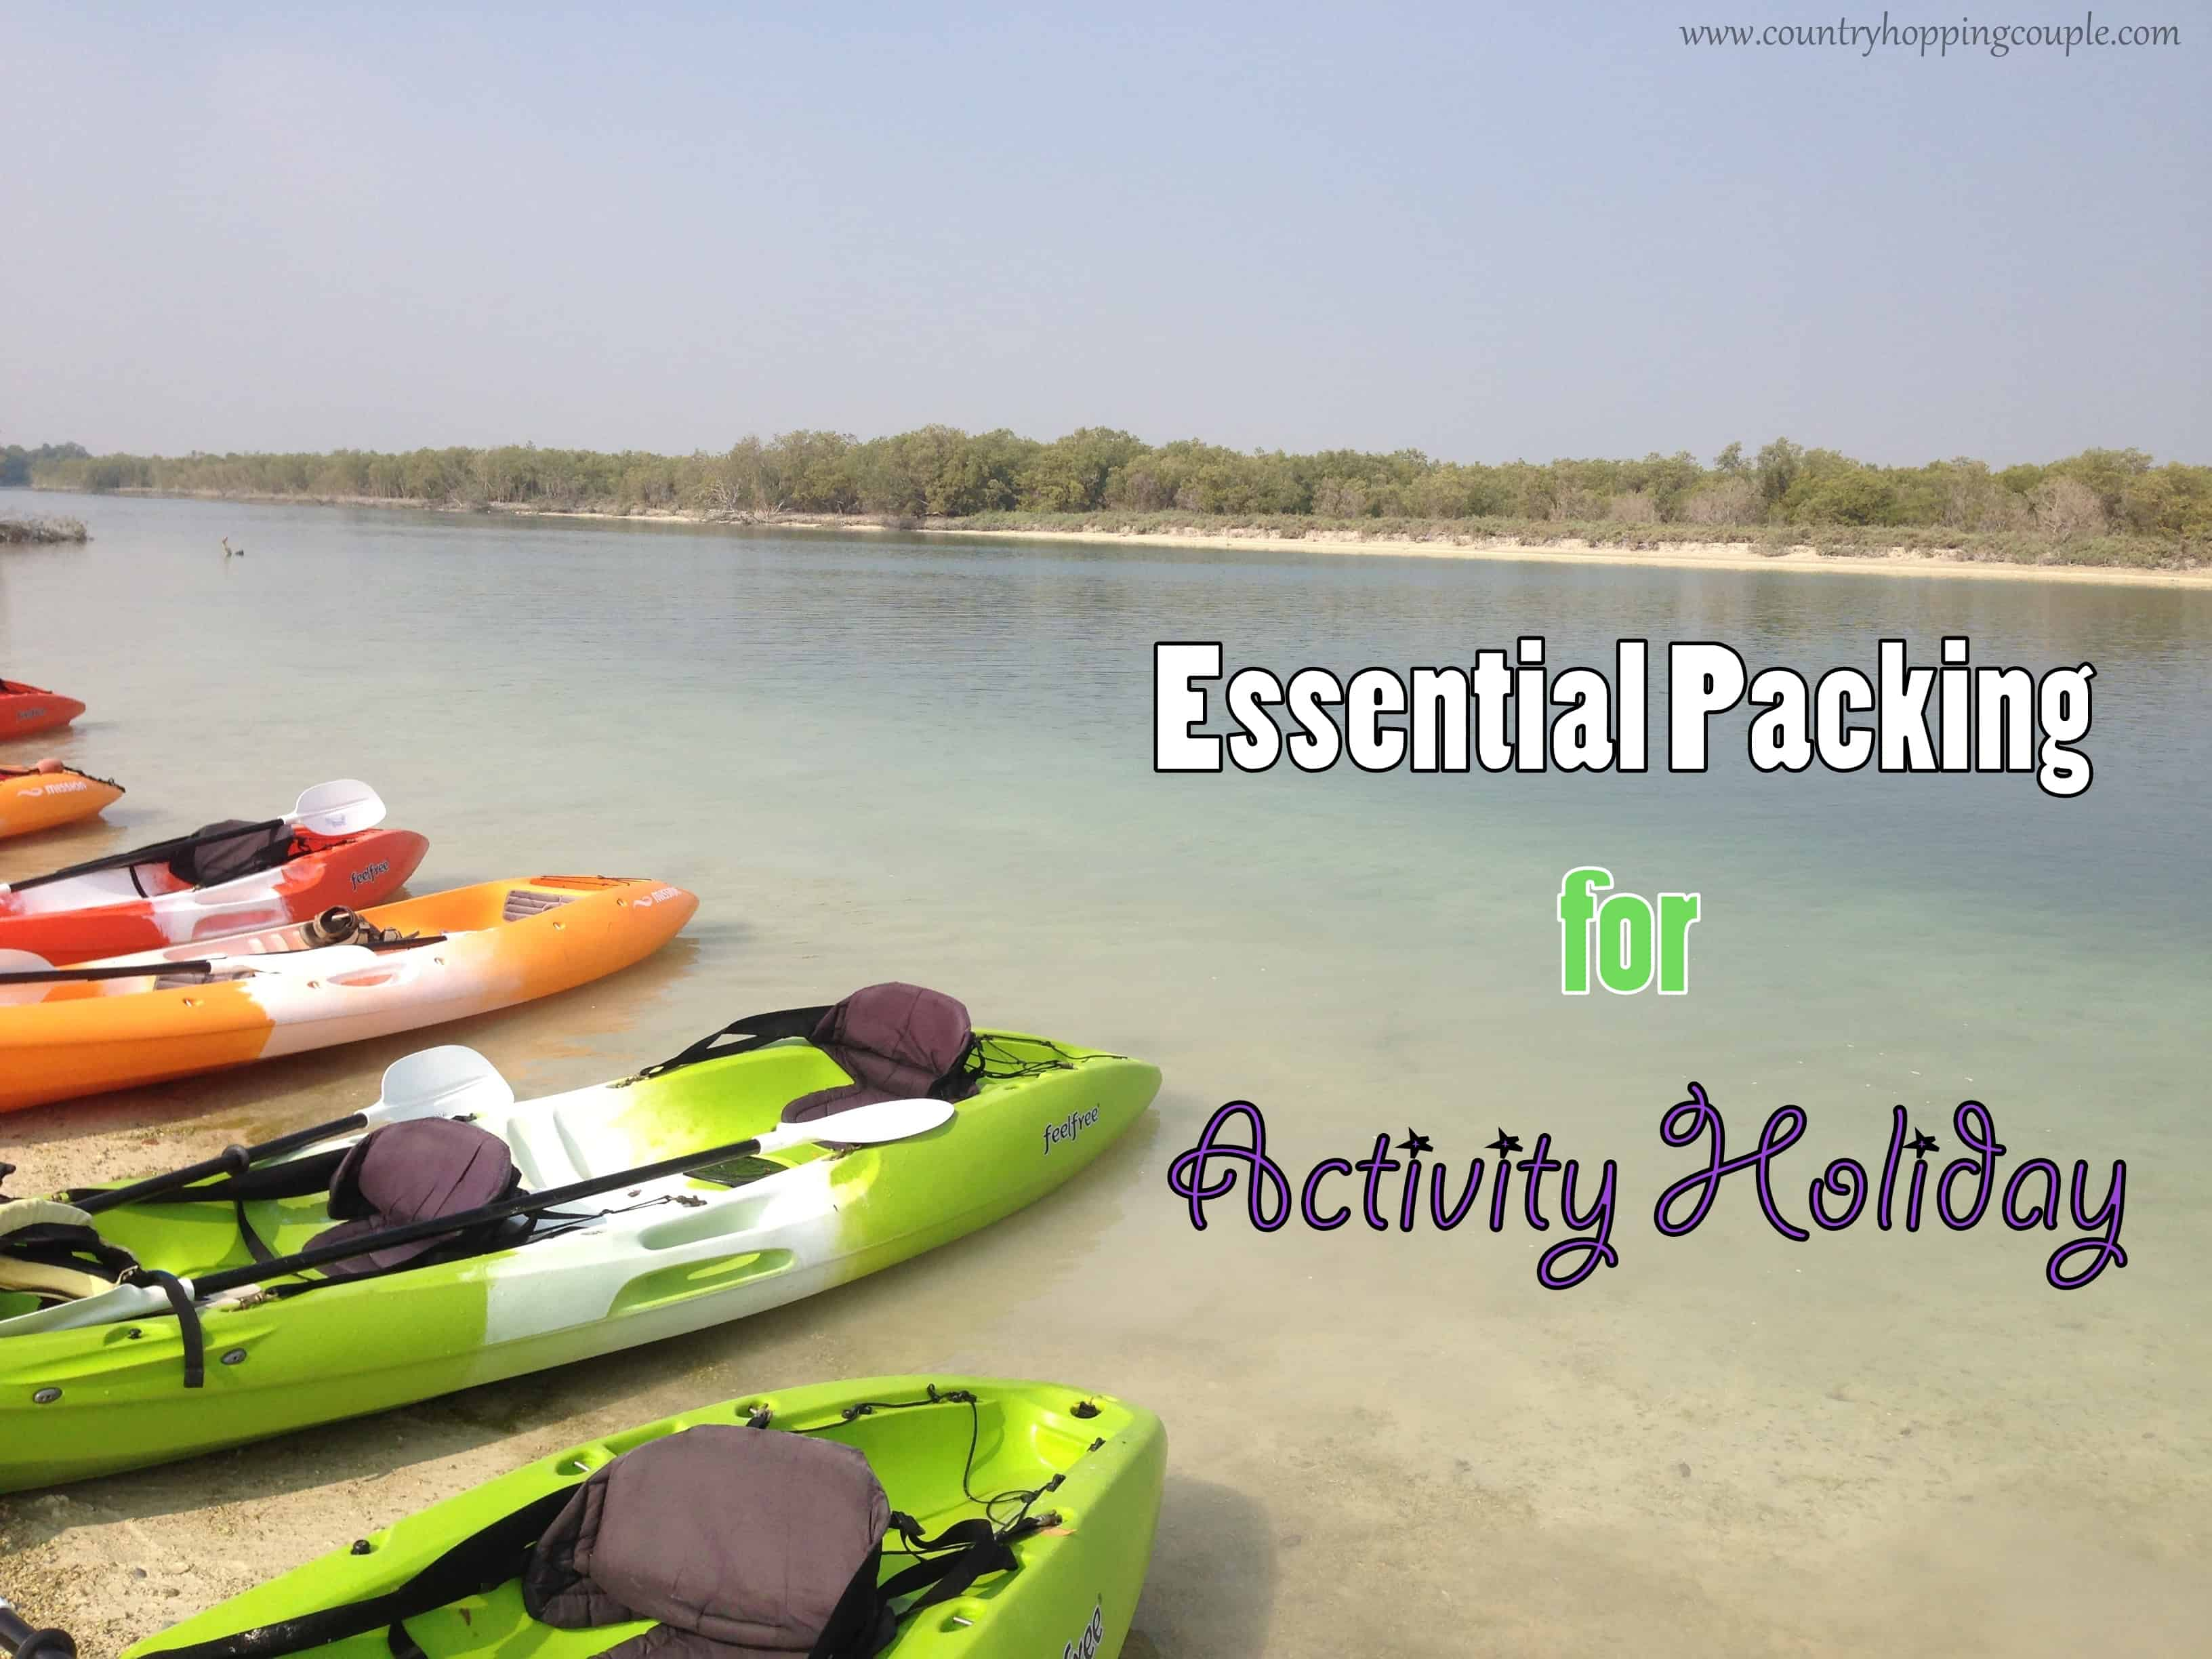 Essential Packing for an activity Holiday